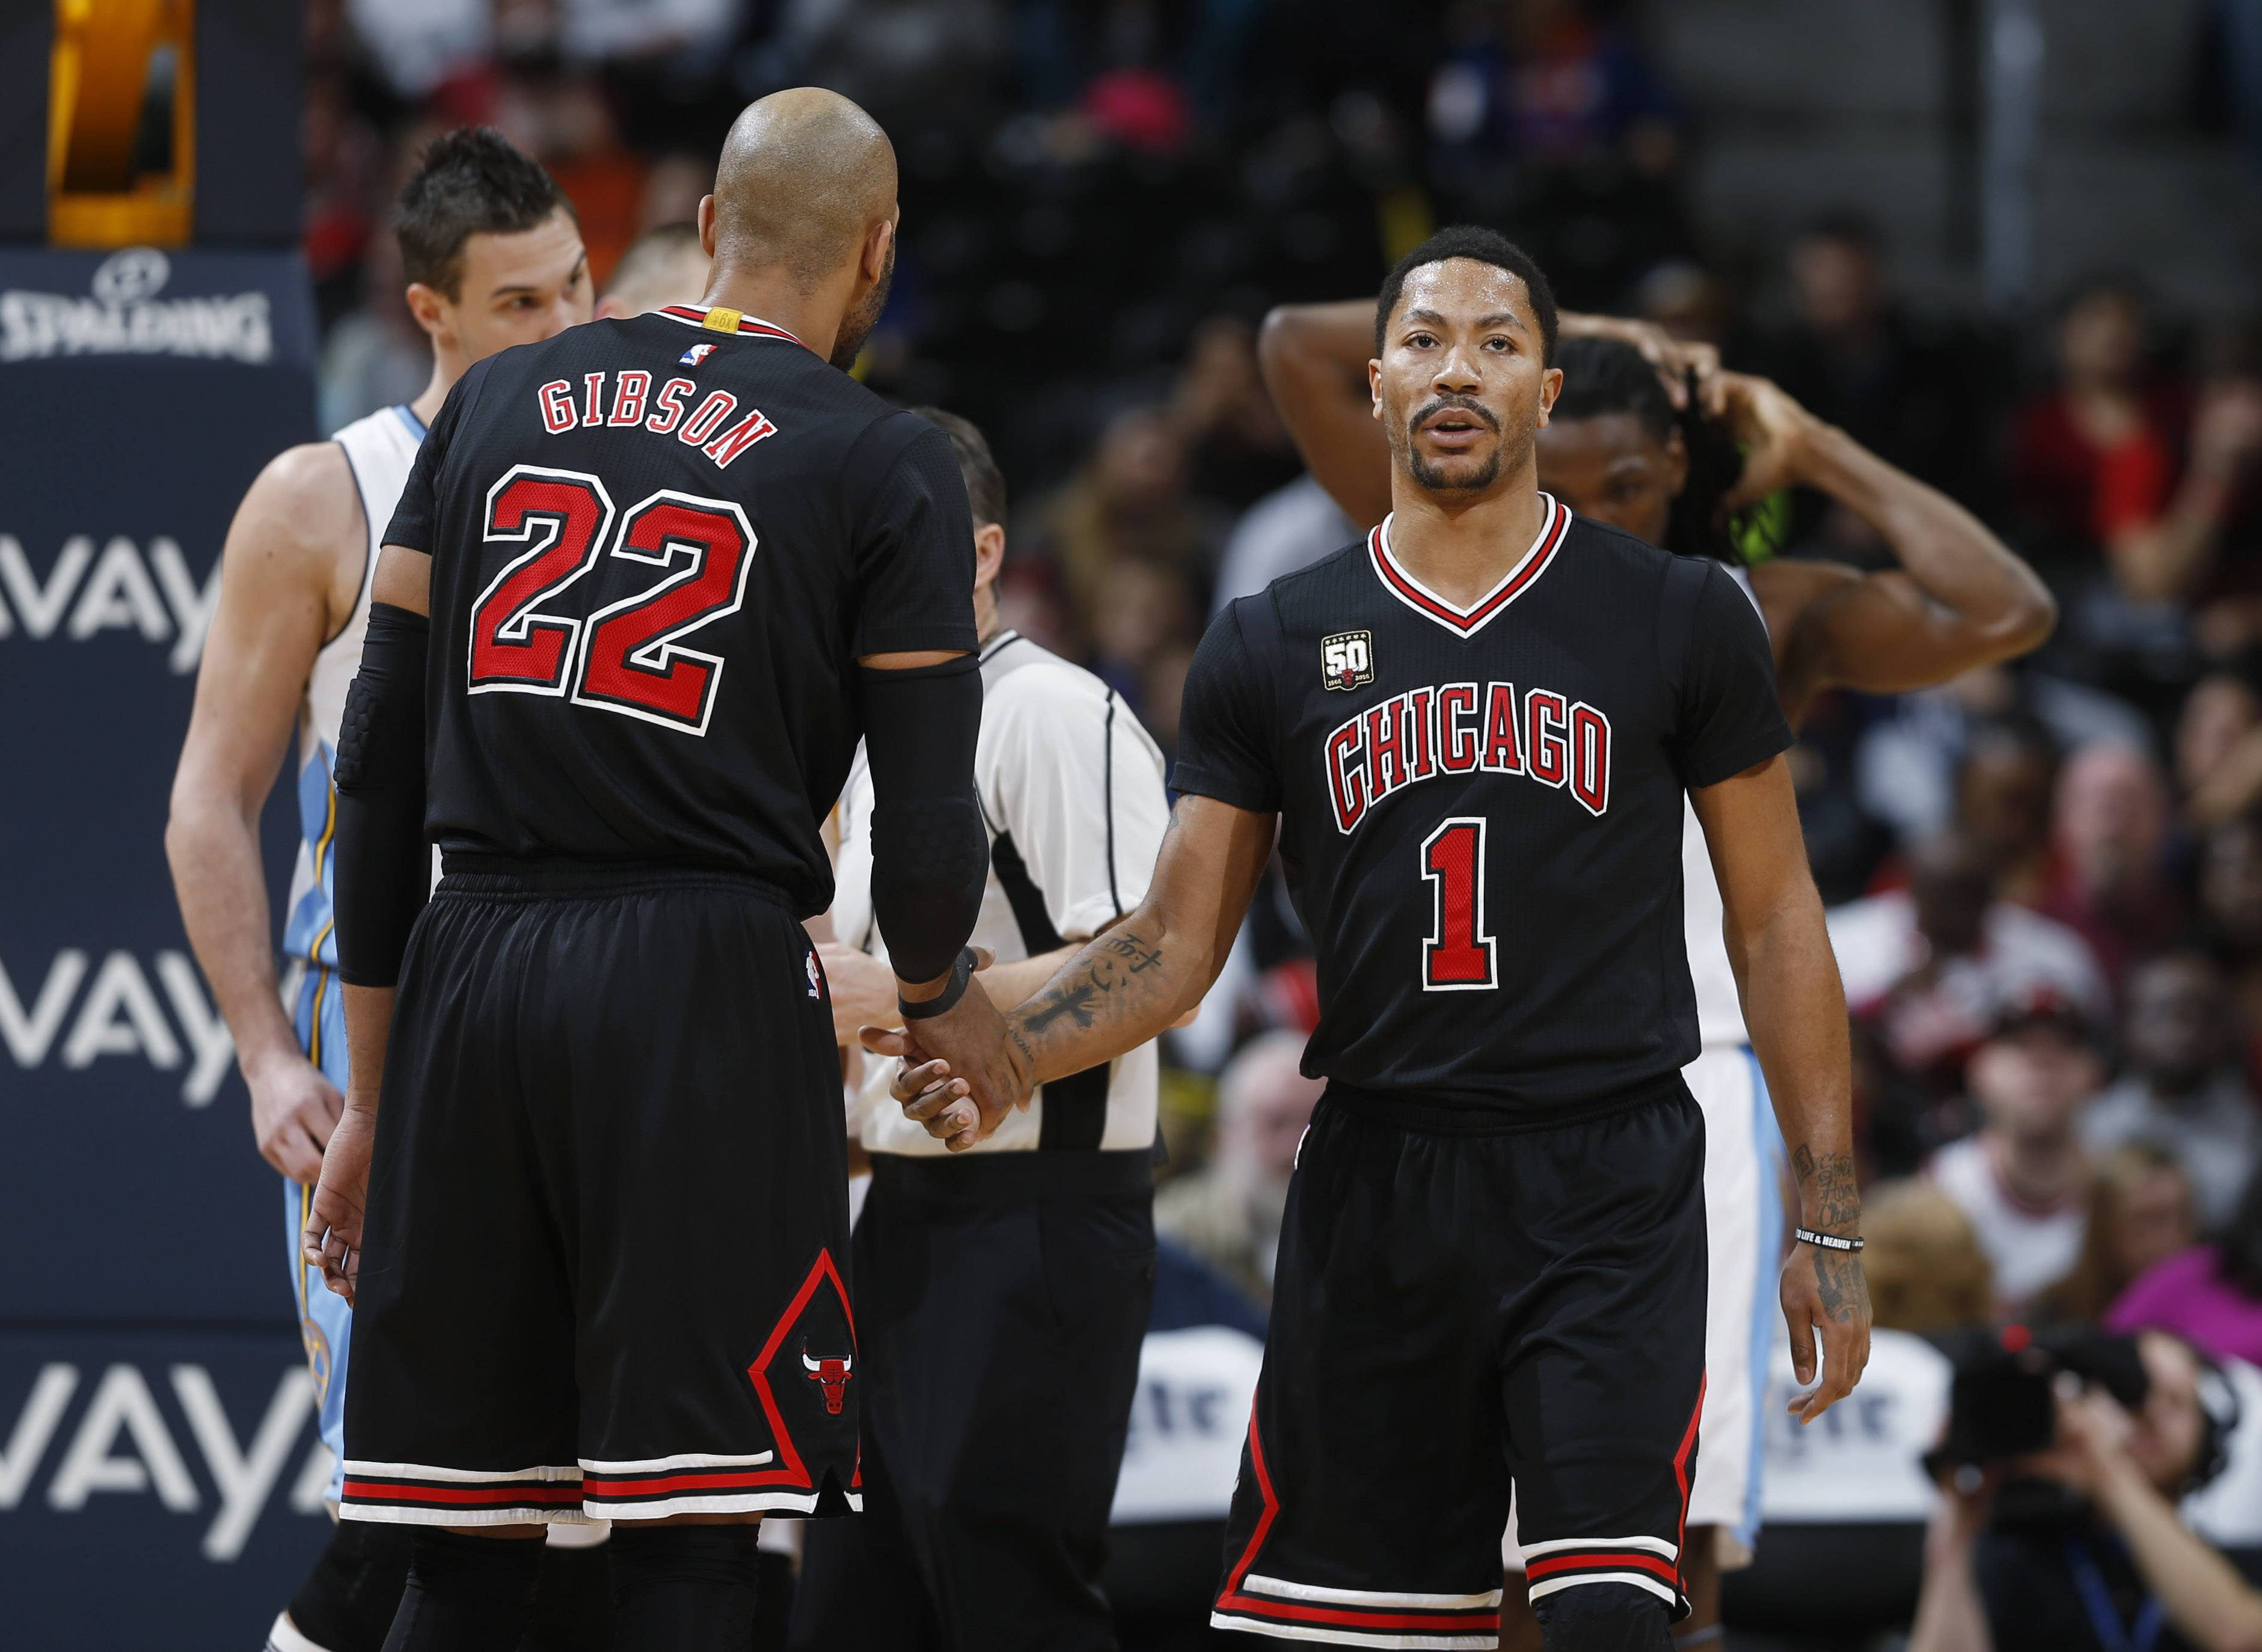 Chicago Bulls guard Derrick Rose, being congratulated by teammated Taj Gibson after making a basket and drawing a foul last Friday night at Denver, sat out Monday night's loss to Charlotte with general body soreness.